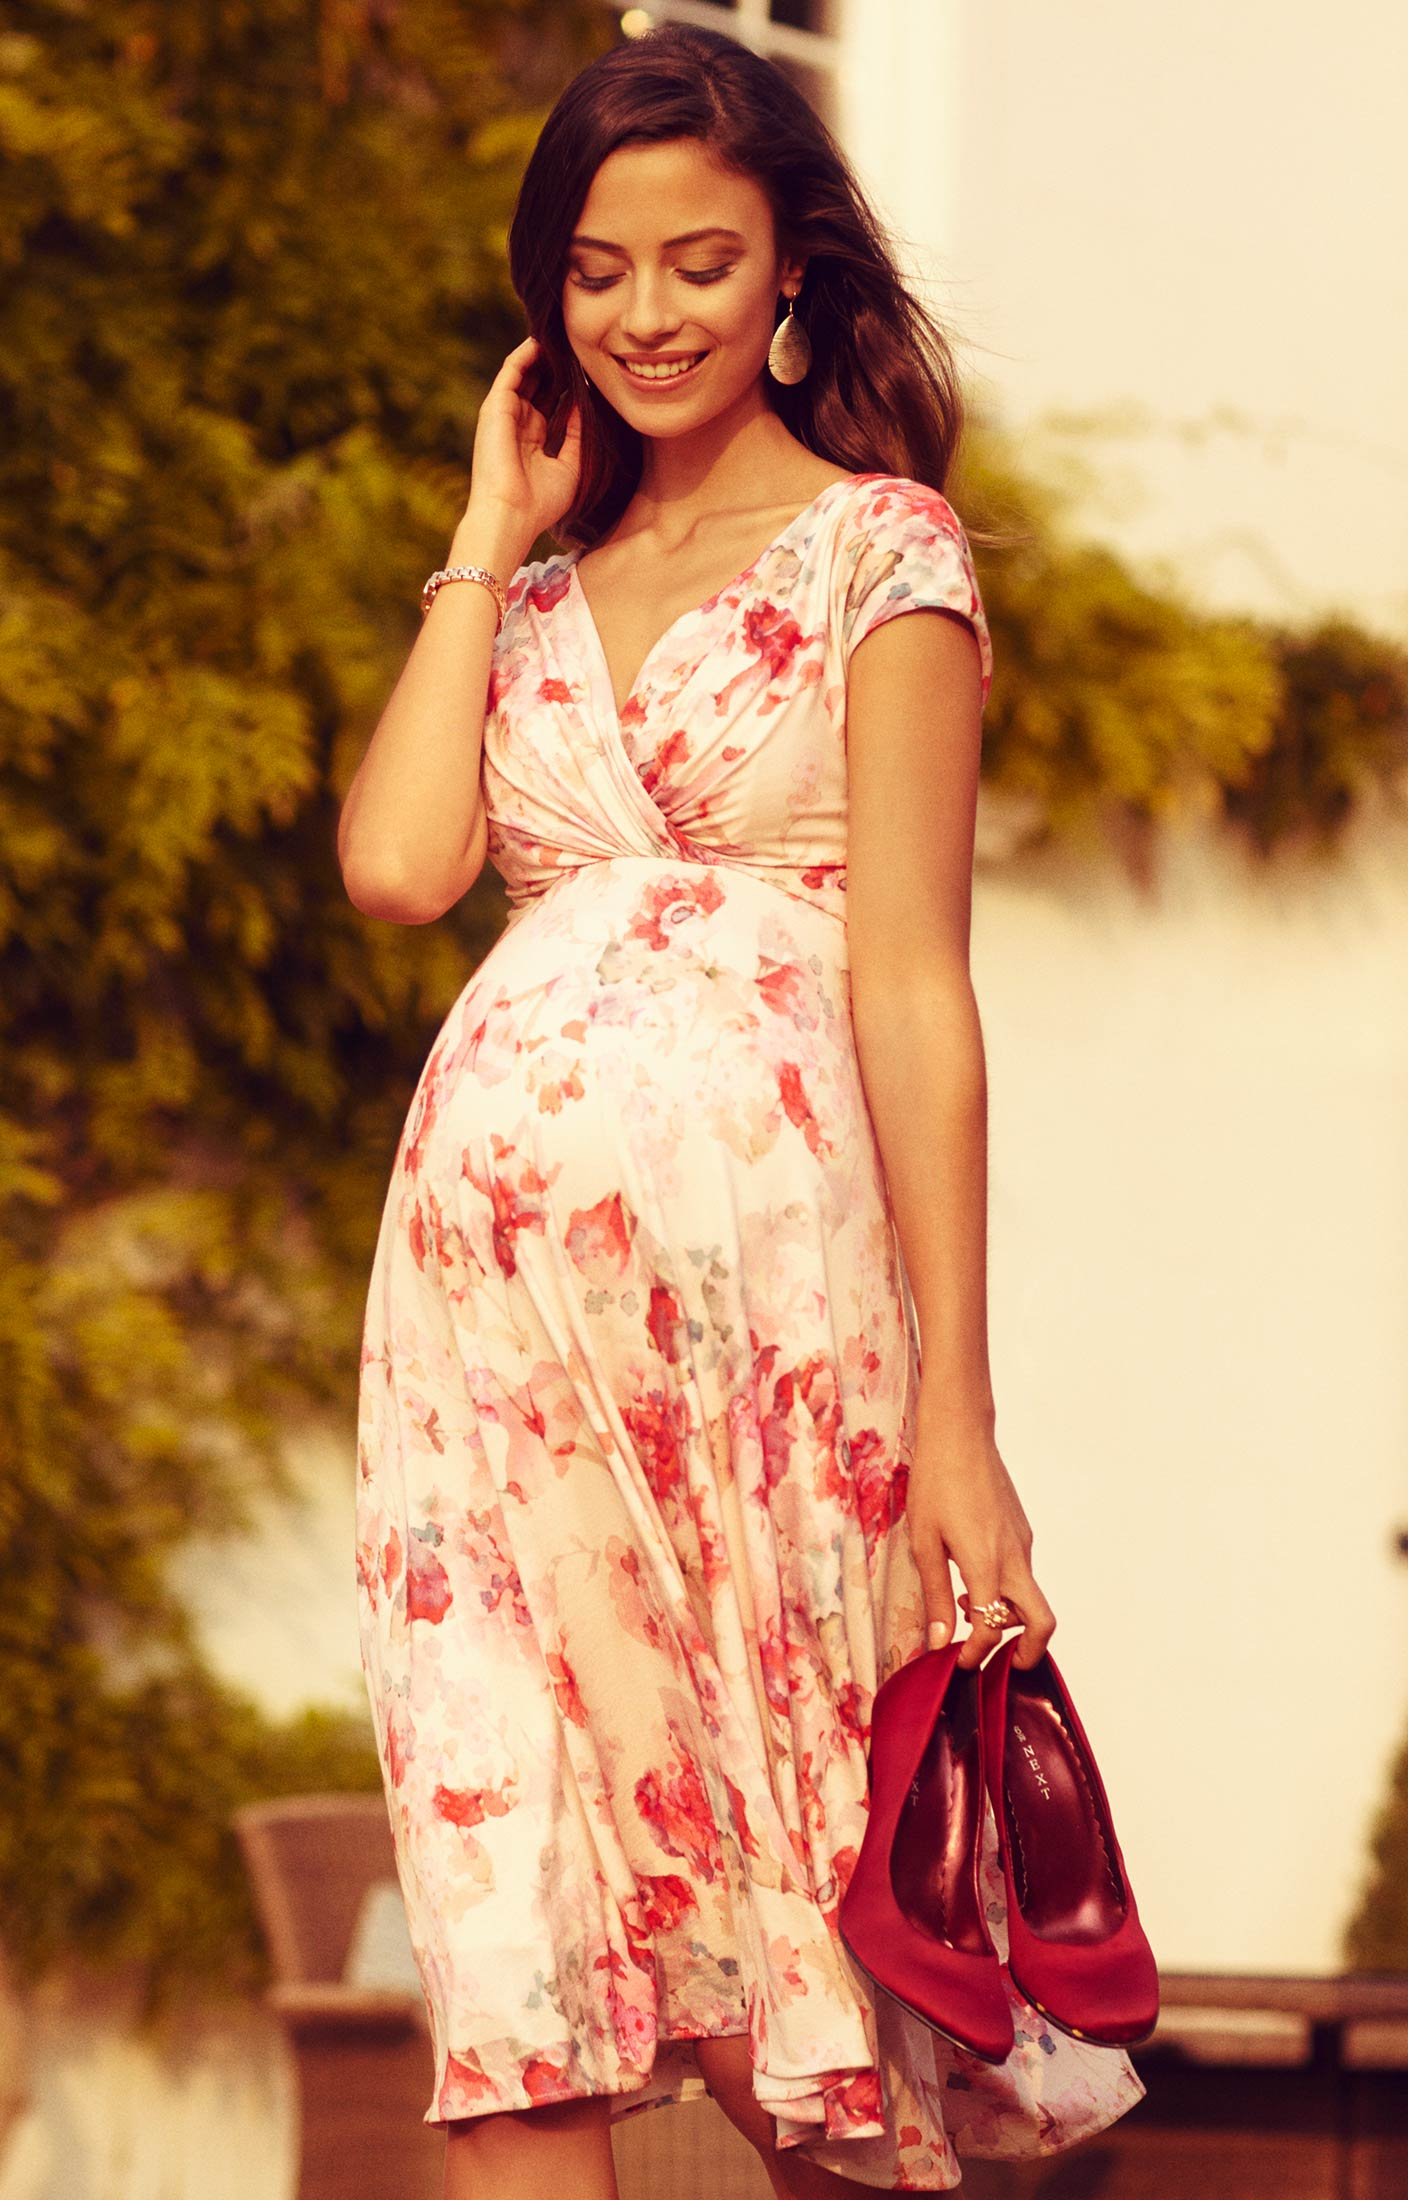 Alessandra Maternity Dress Short English Rose Maternity Wedding Dresses Evening Wear And Party Clothes By Tiffany Rose Pregnant Wedding Dress Wedding Guest Dress Maternity Dresses,Dressy Dresses For Weddings